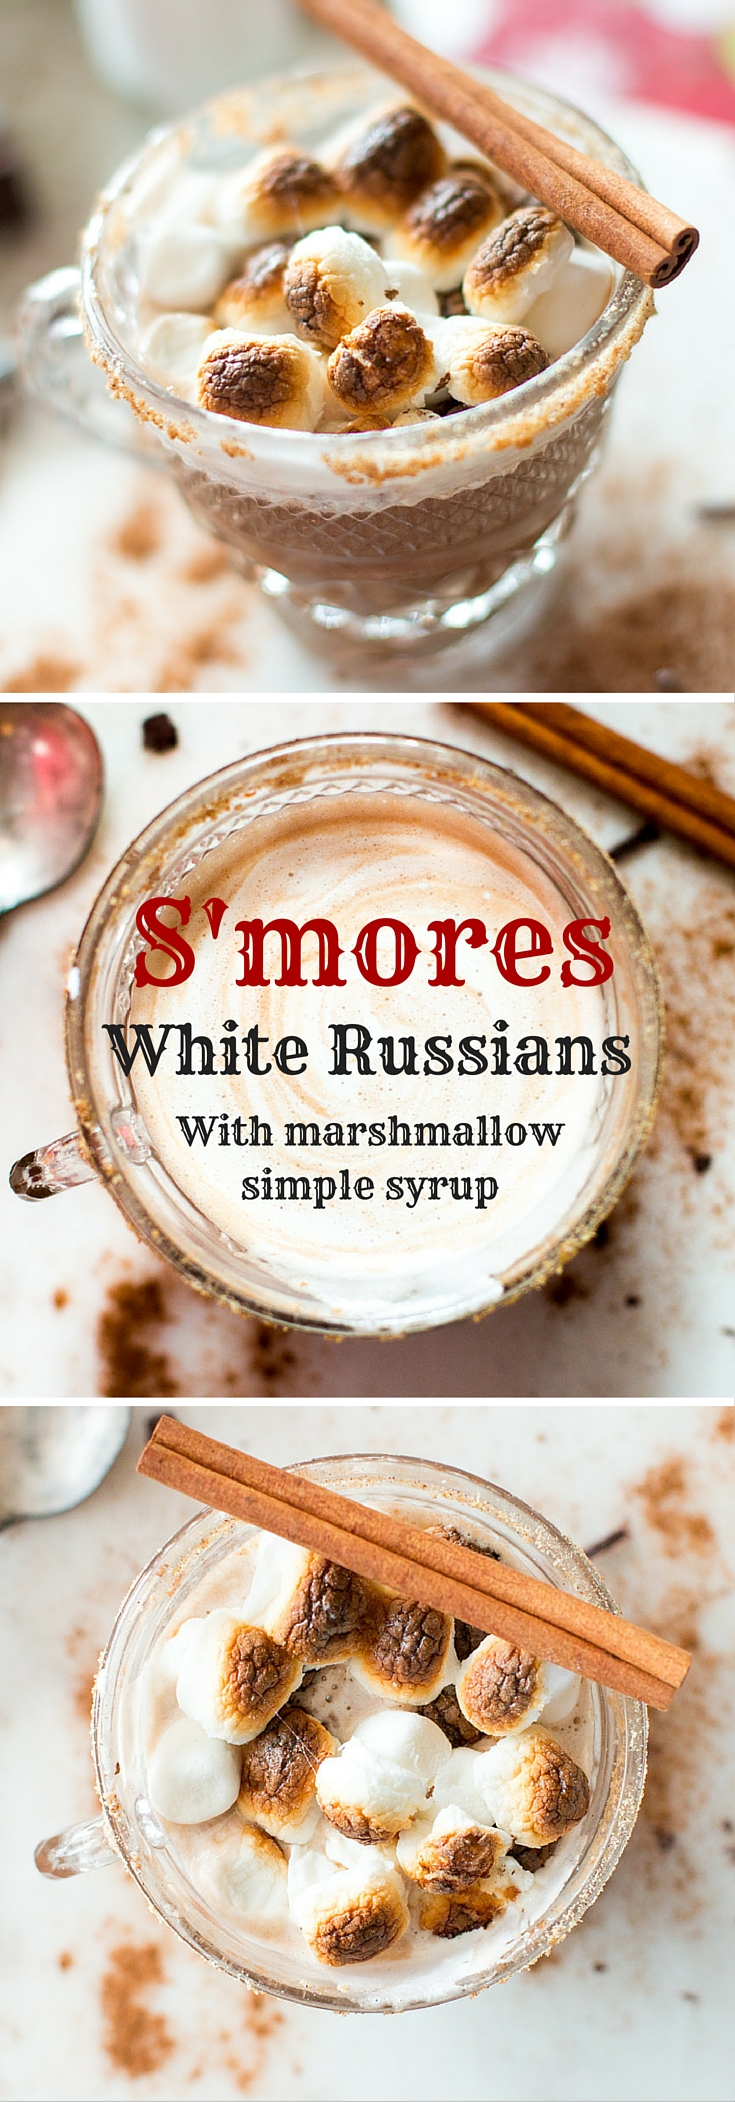 These S'mores White Russians are seriously decadent. Forget dessert. These are dessert AND an alcoholic beverage. Vodka, Kahlua, spiced marshmallow simple syrup, semi-sweet chocolate, and roasted marshmallows all combine to make a warm and toasty drink that will leave you feeling a little tipsy.